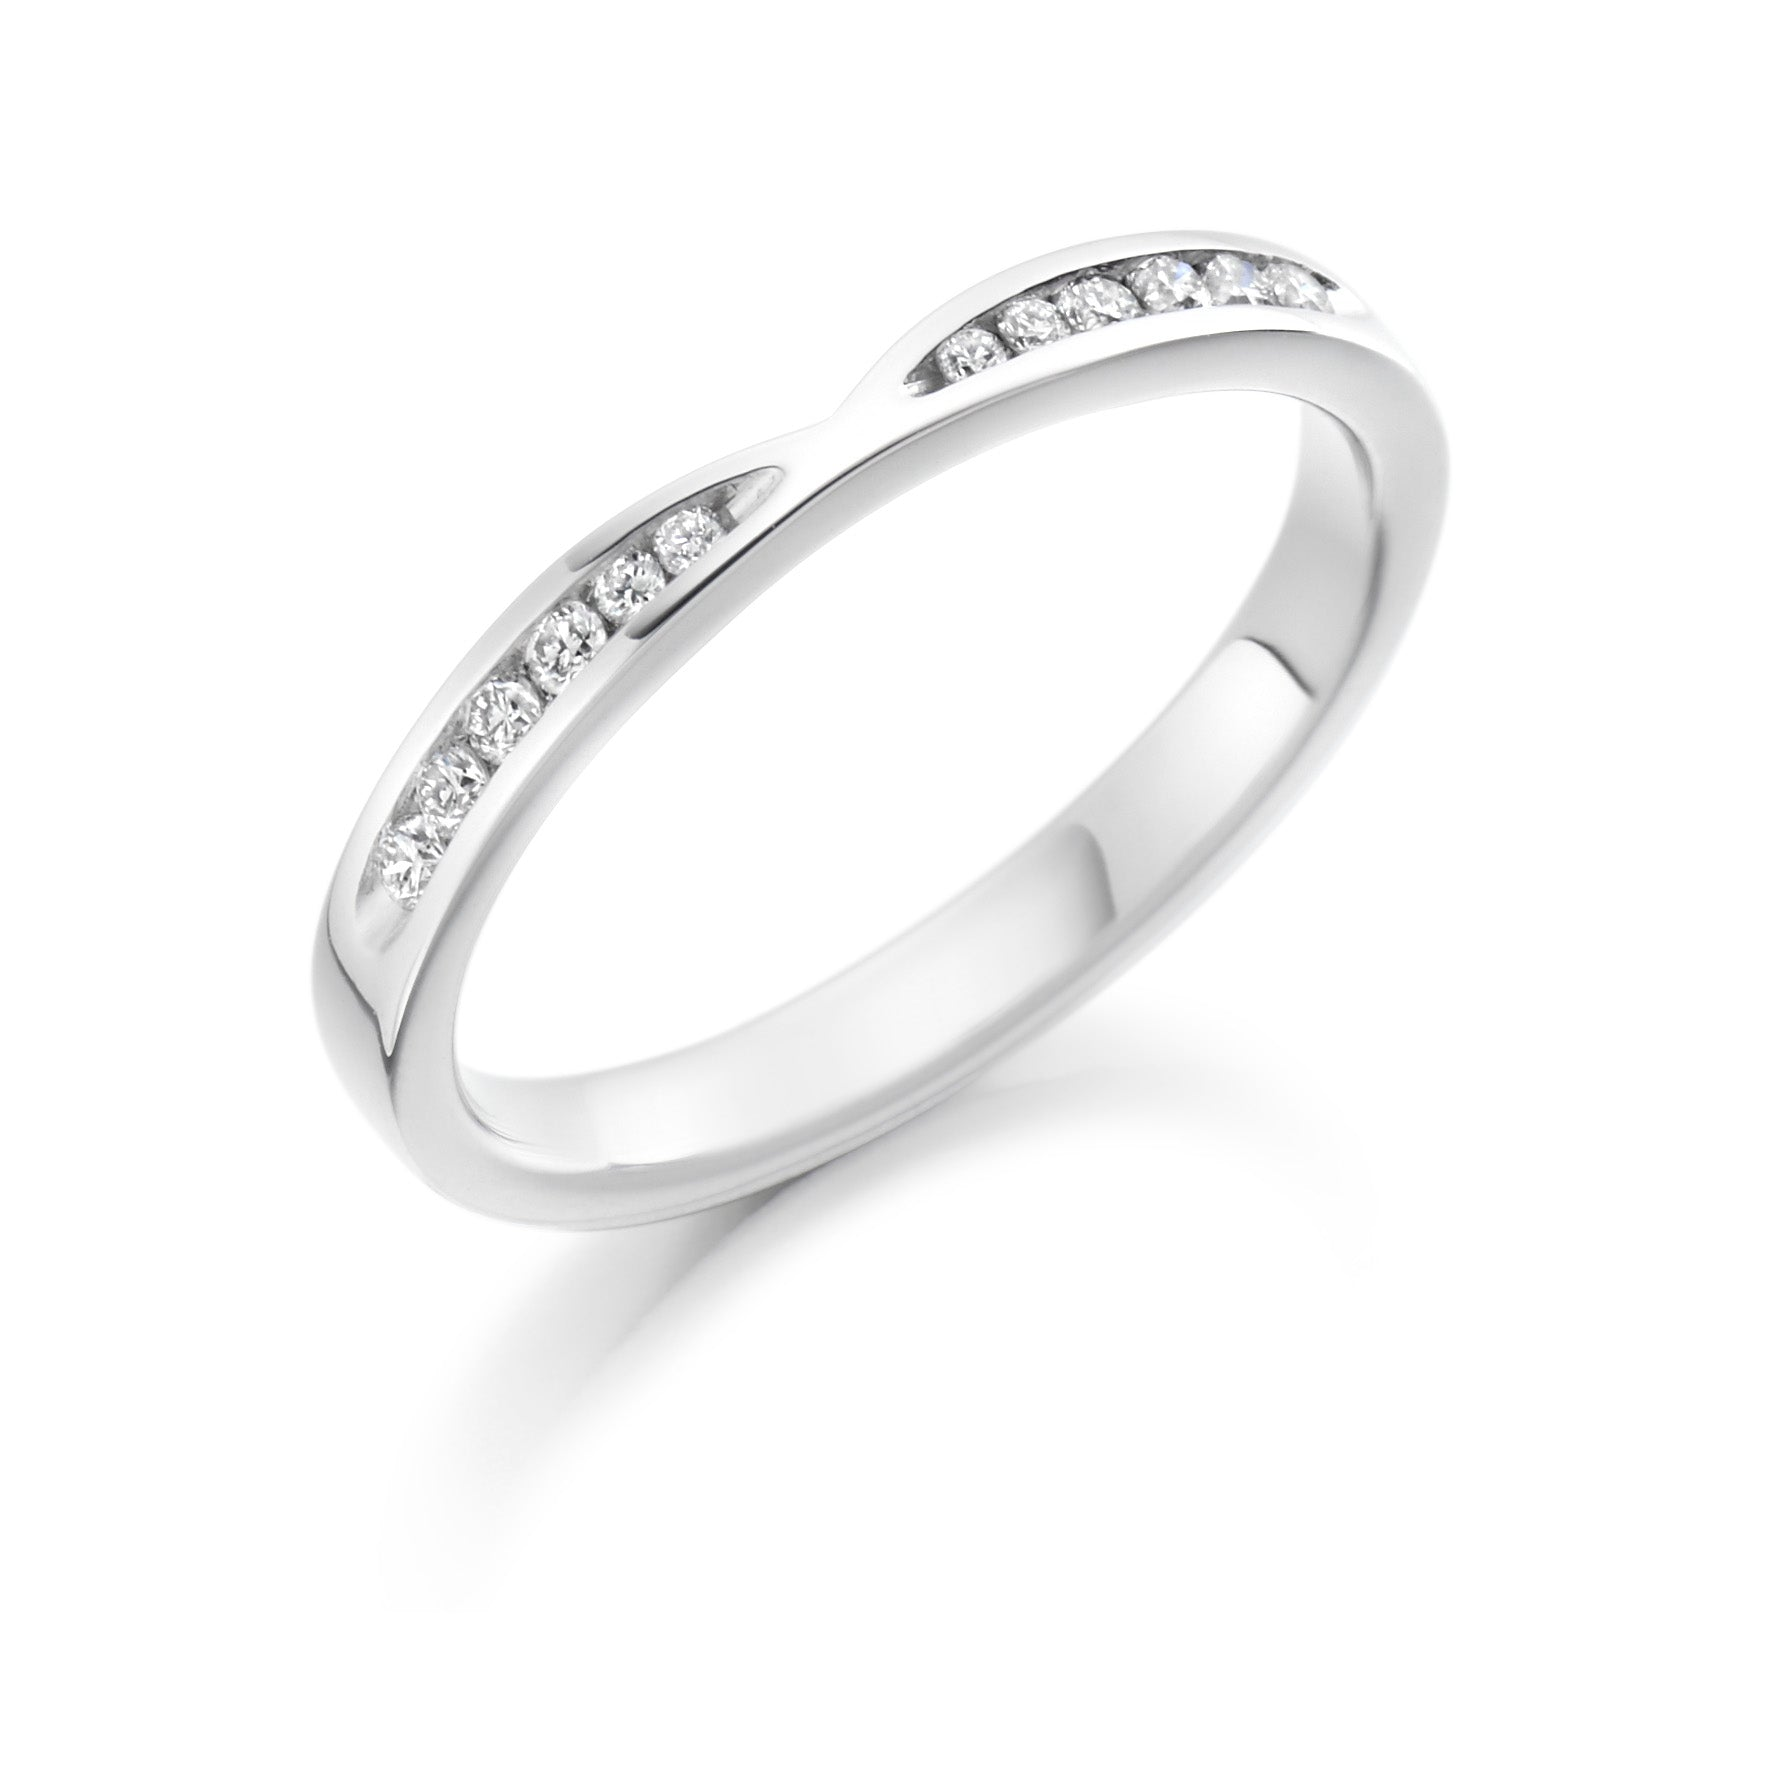 18ct White Gold 0.18ct Round Brilliant Cut Diamond Curved Vintage Wedding Ring